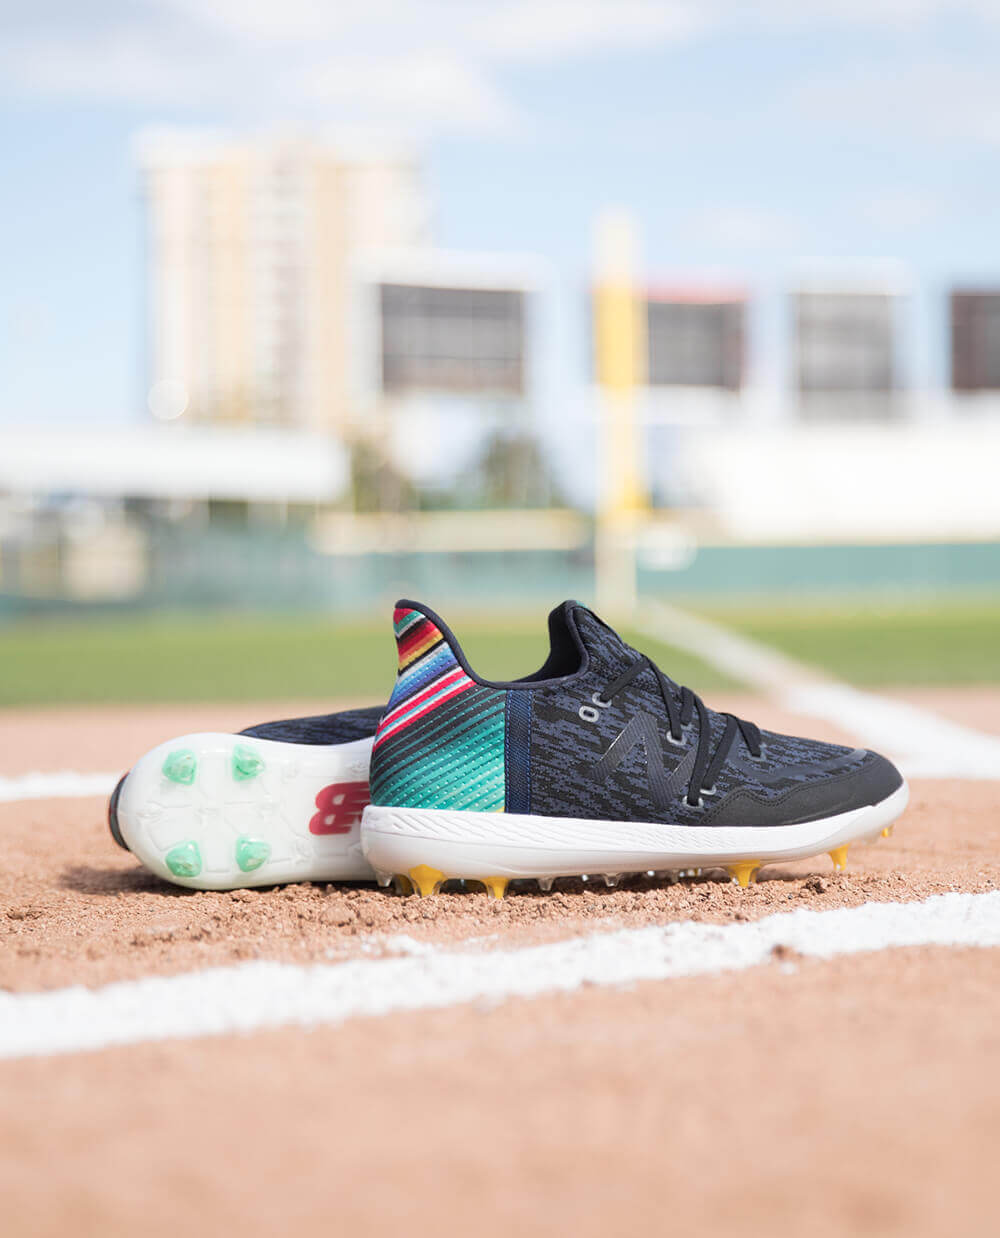 be25aeba1 What Pros Wear  Francisco Lindor s New Balance Cleat for 2019